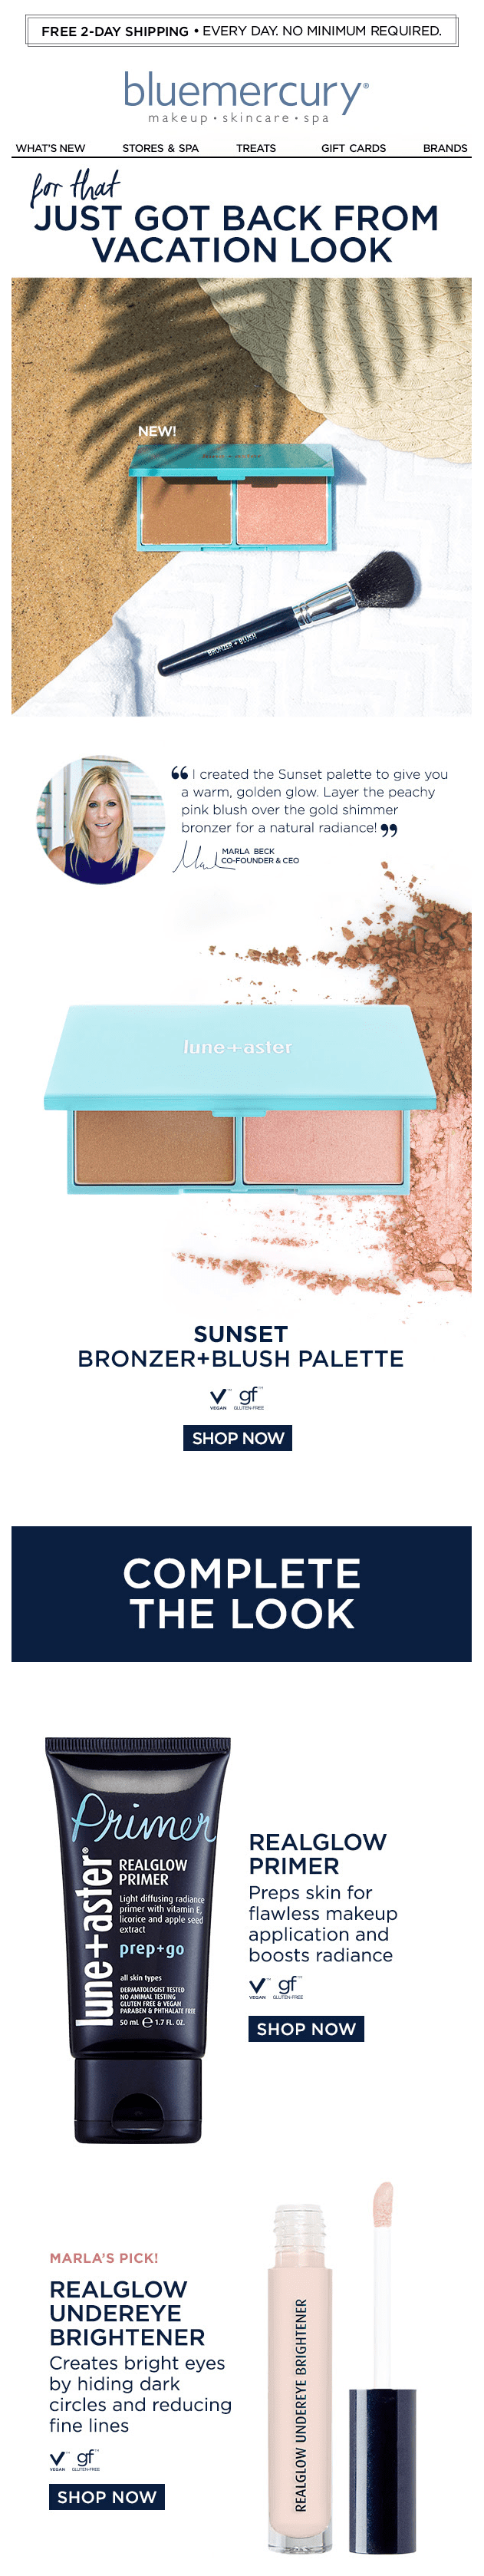 bluemercury cosmetics beauty make-up email newsletter